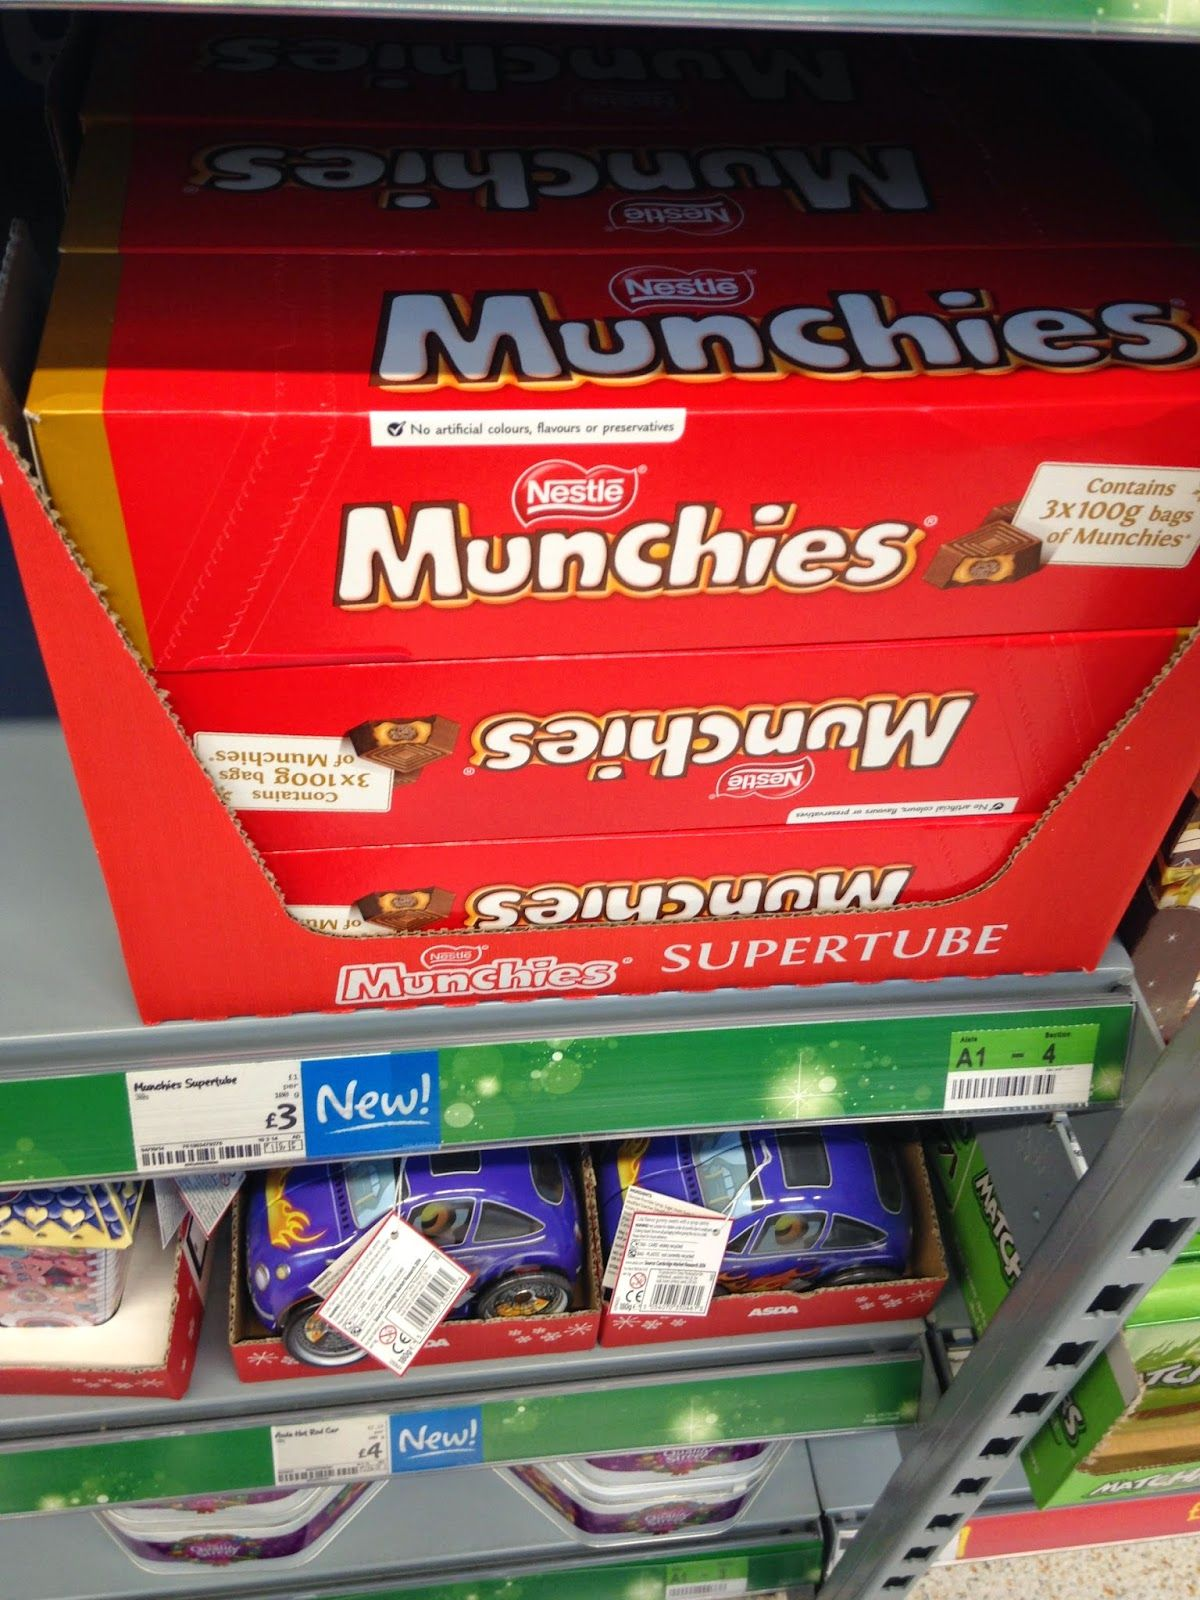 Marvellous Reviews Asda Christmas In Store Round Up Asda Christmas Christmas Candy